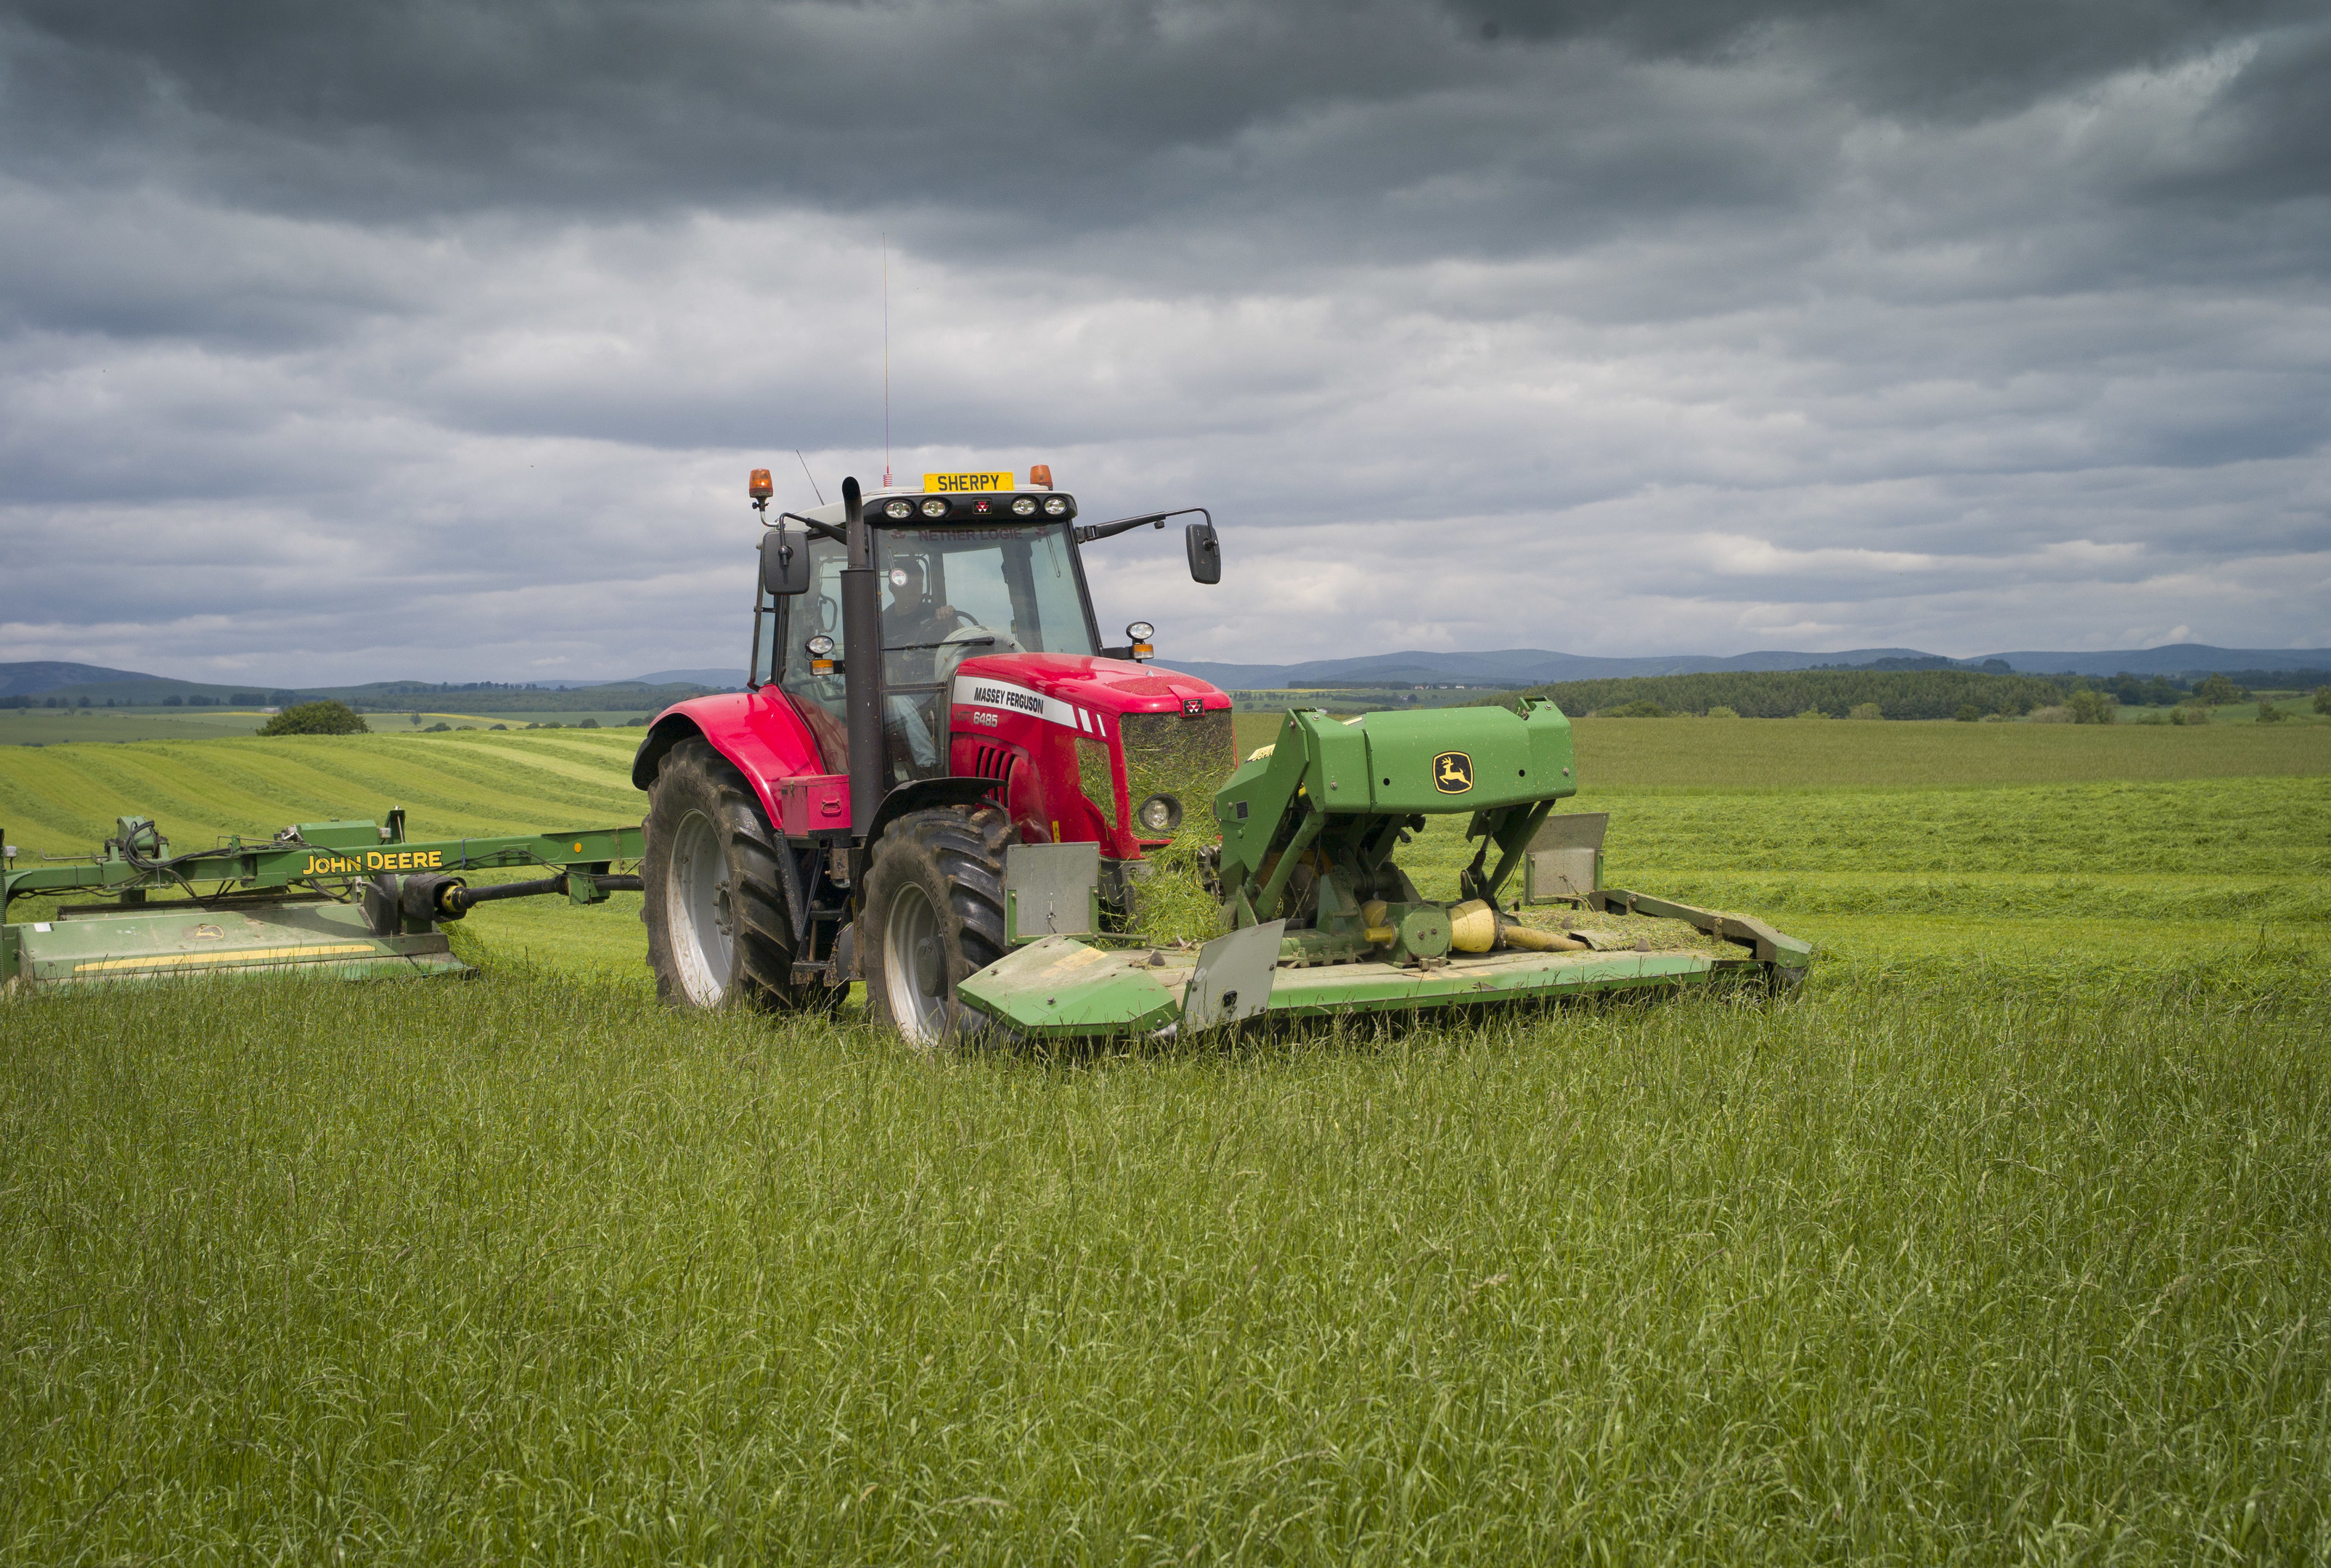 Farmers had been told to manage their grassland better